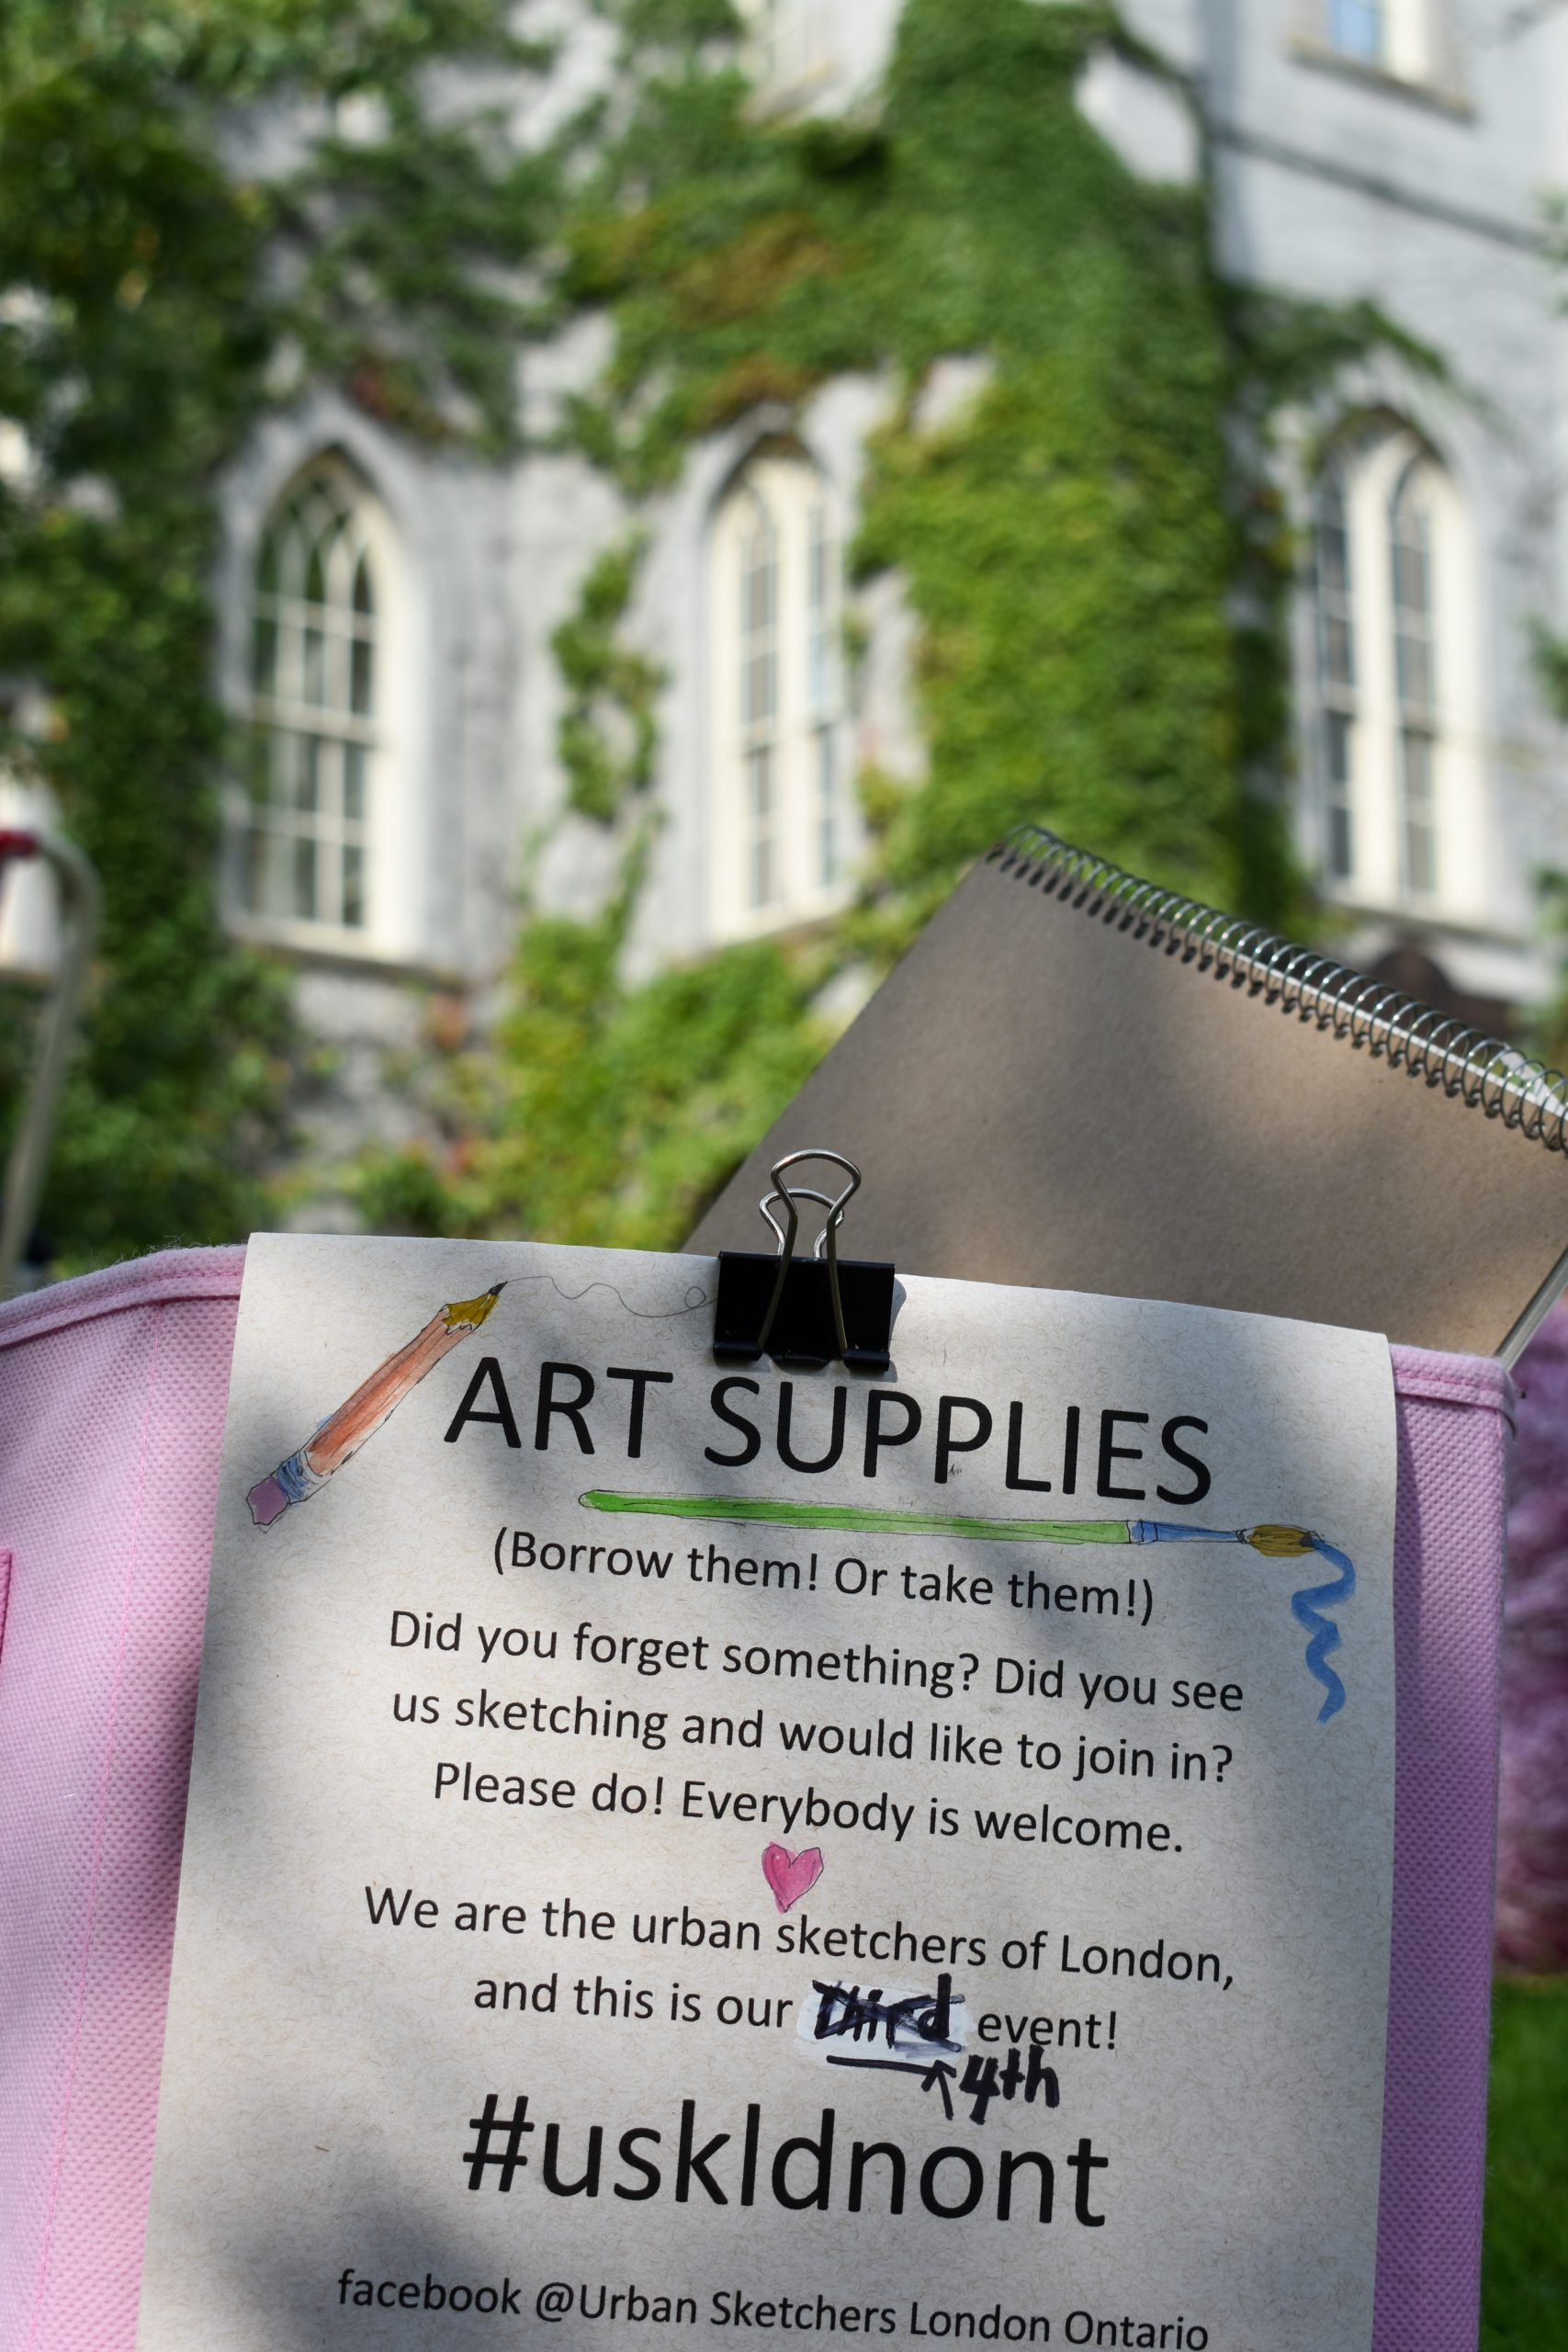 A container of art supplies with a sign welcoming people to join urban sketching